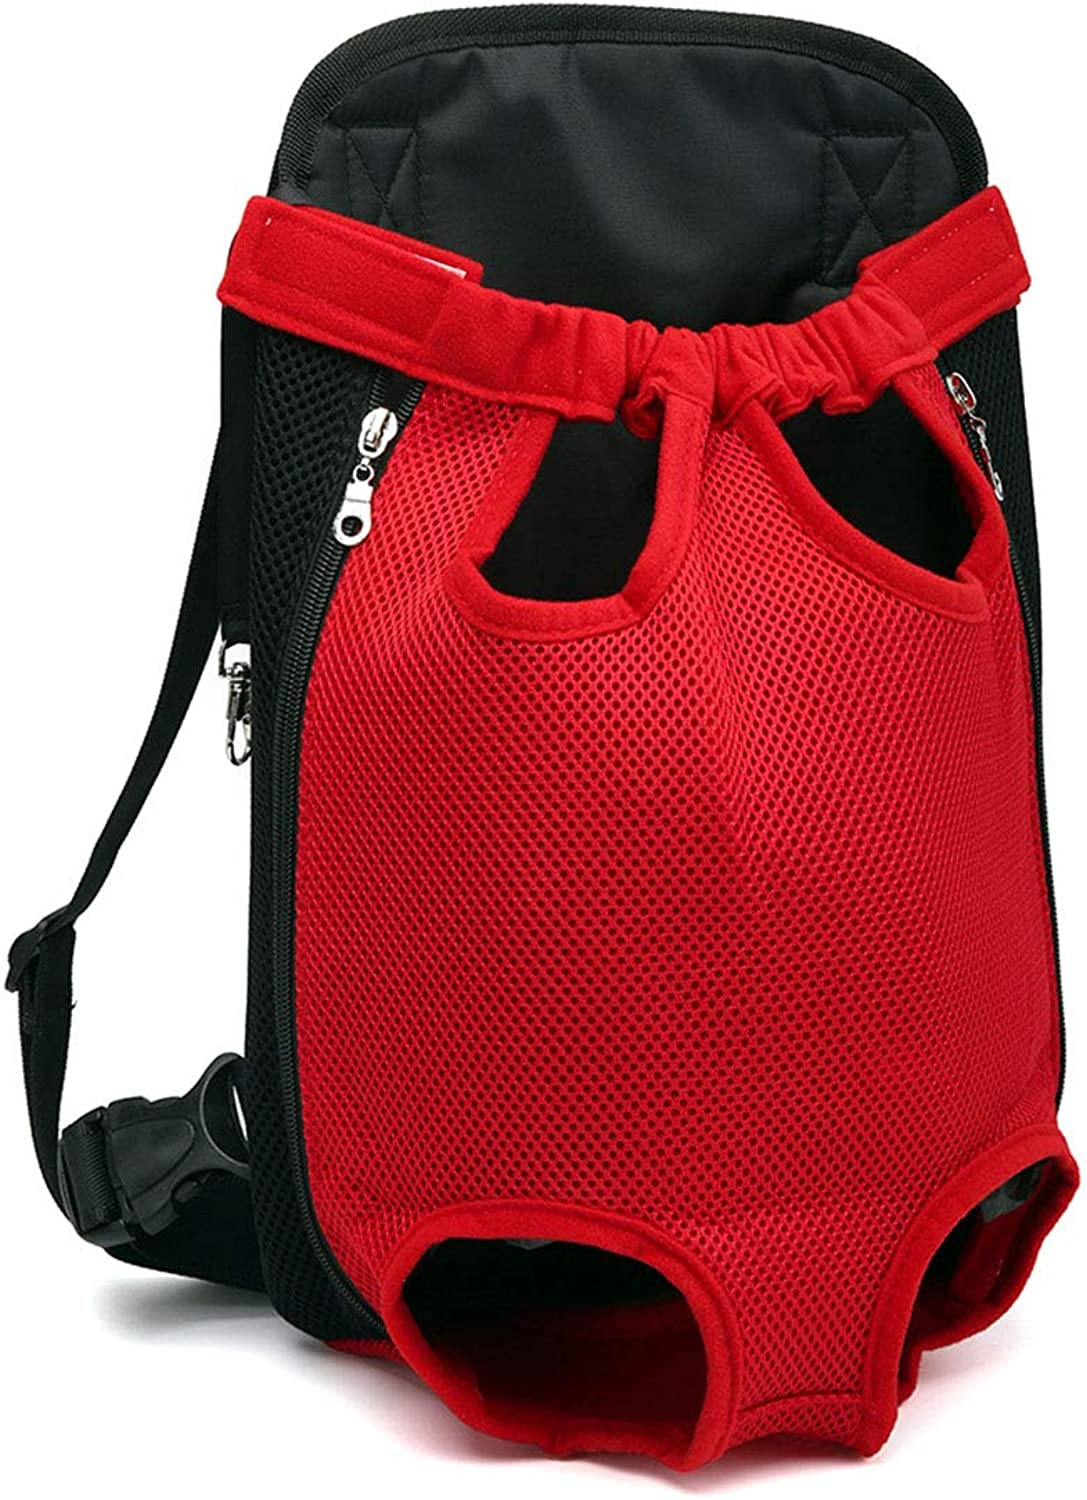 Pet Carrier,Legs Out FrontFacing Dog Carrier Backpack Hands Free Adjustable Pet Dog Backpack Carrier for Walking Hiking Bike and Motorcycle,XL,red